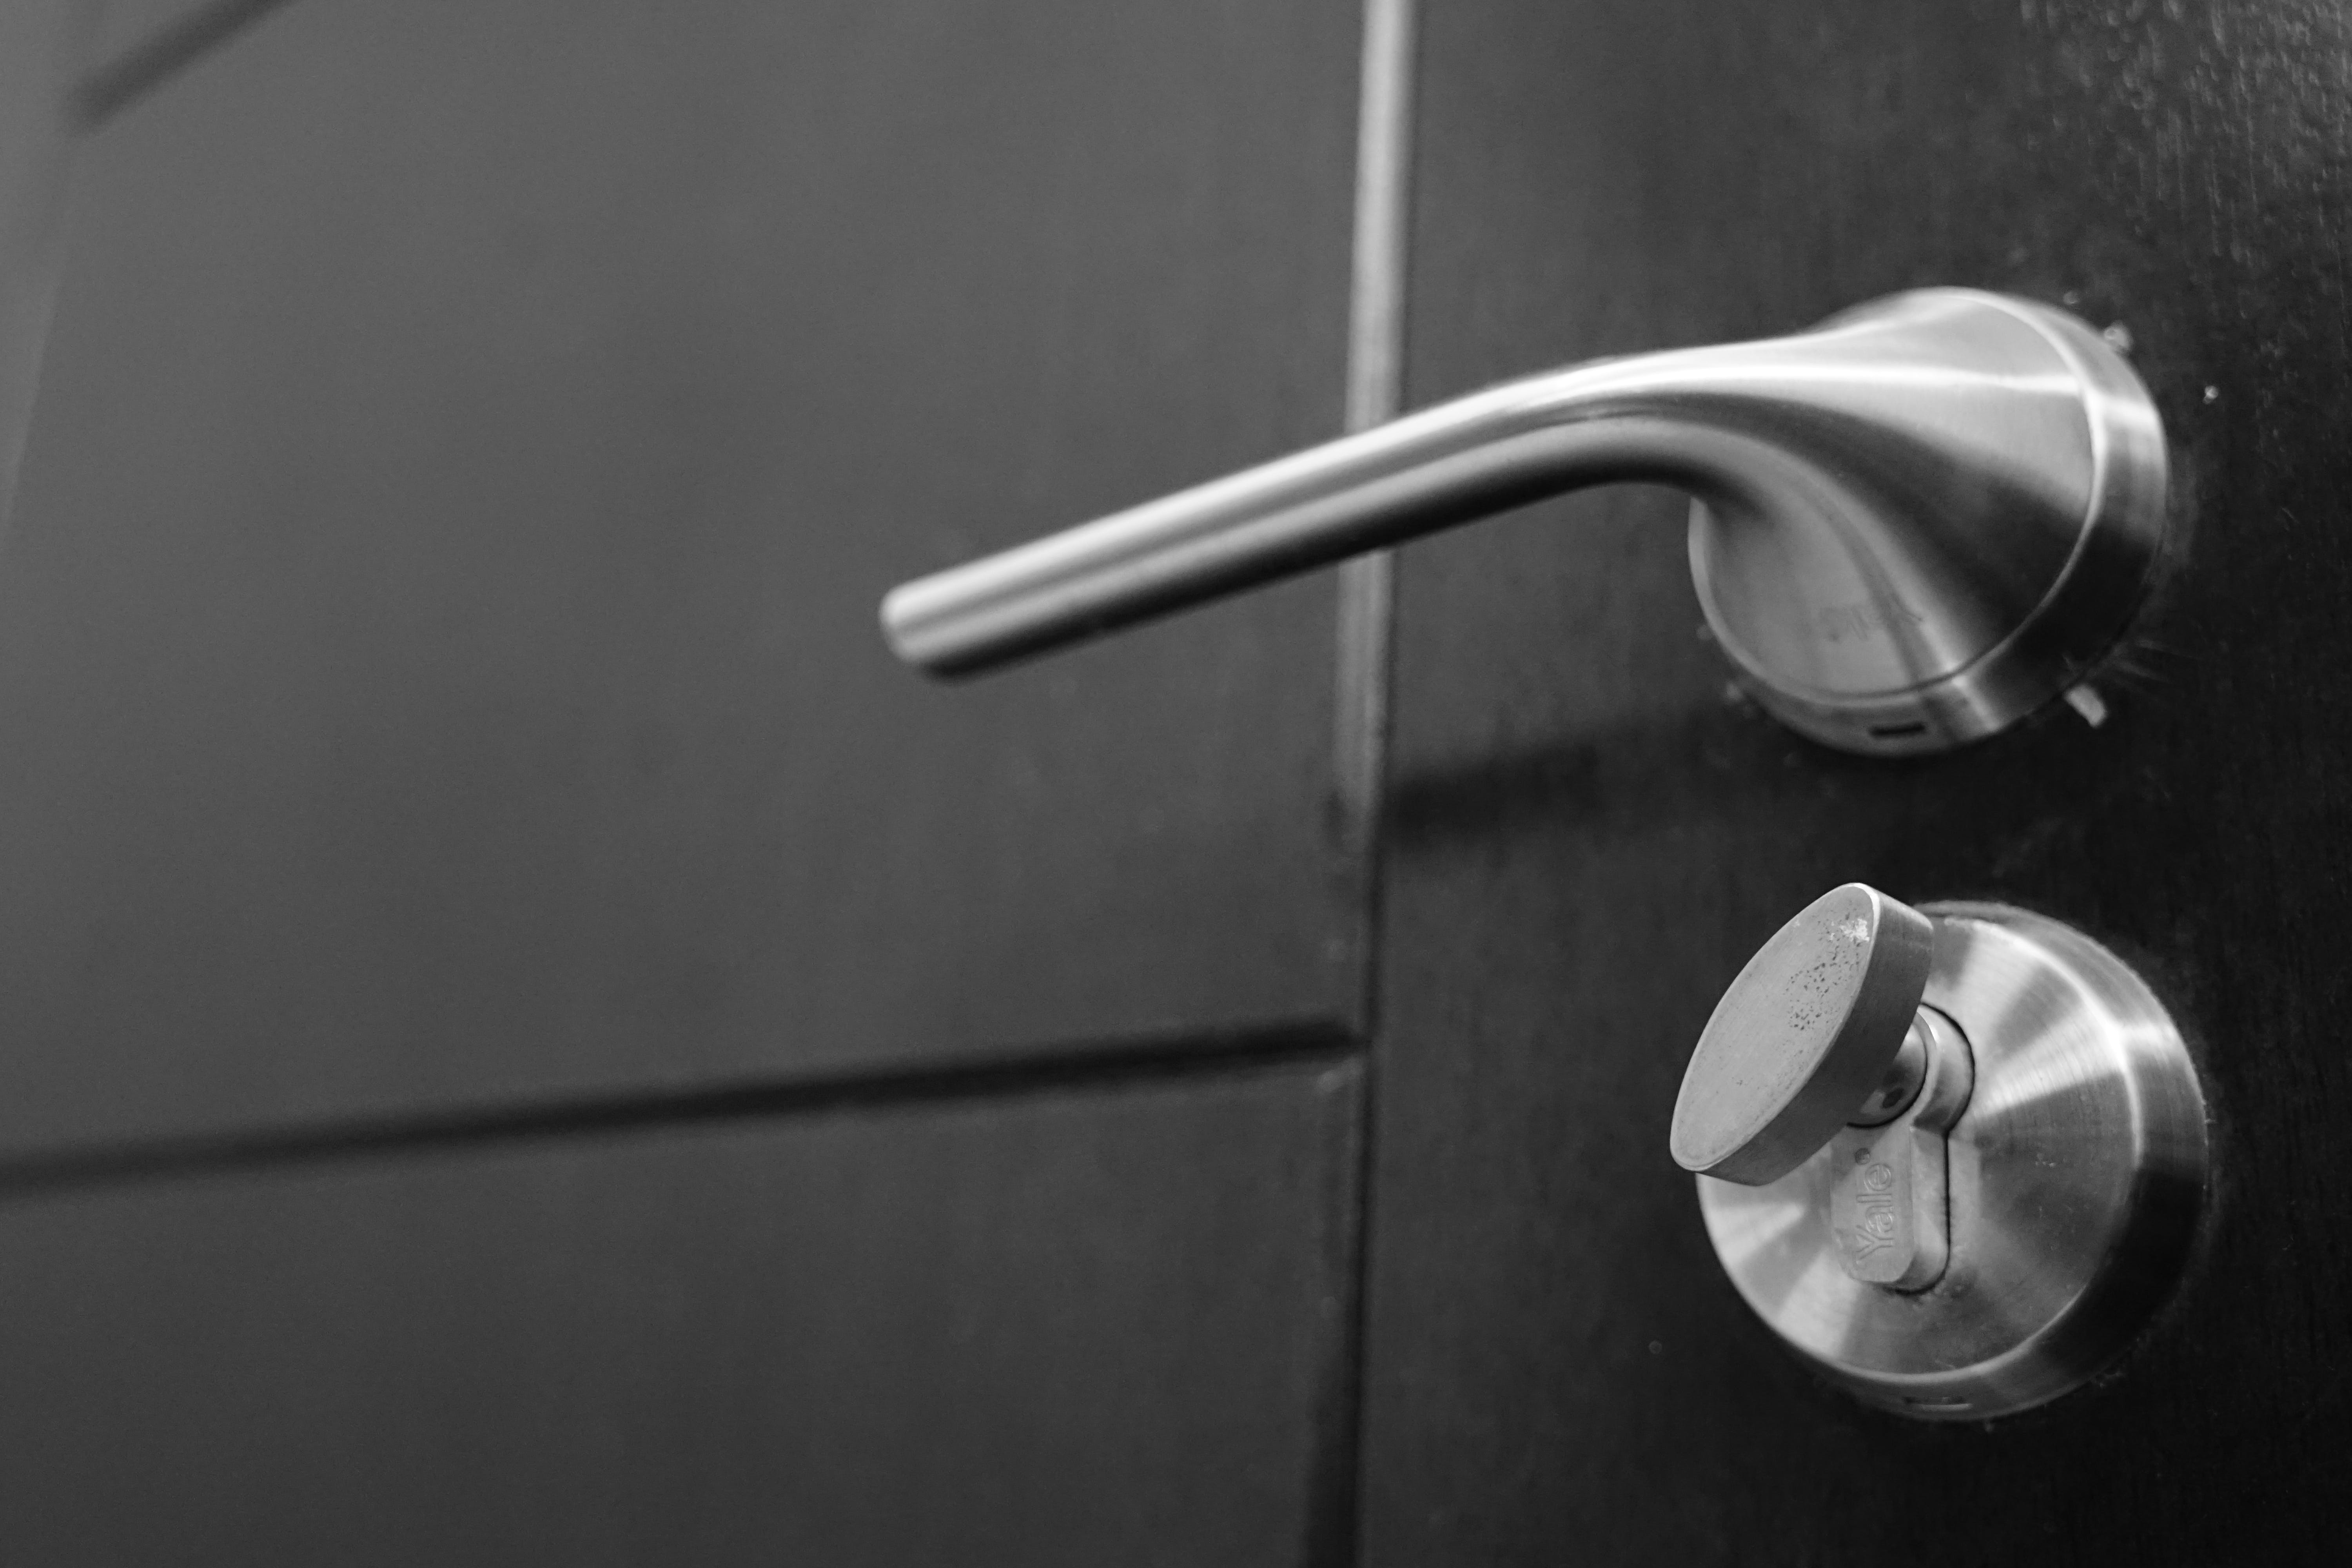 Close-up Photography of Gray Stainless Steel Door Lever and Lock